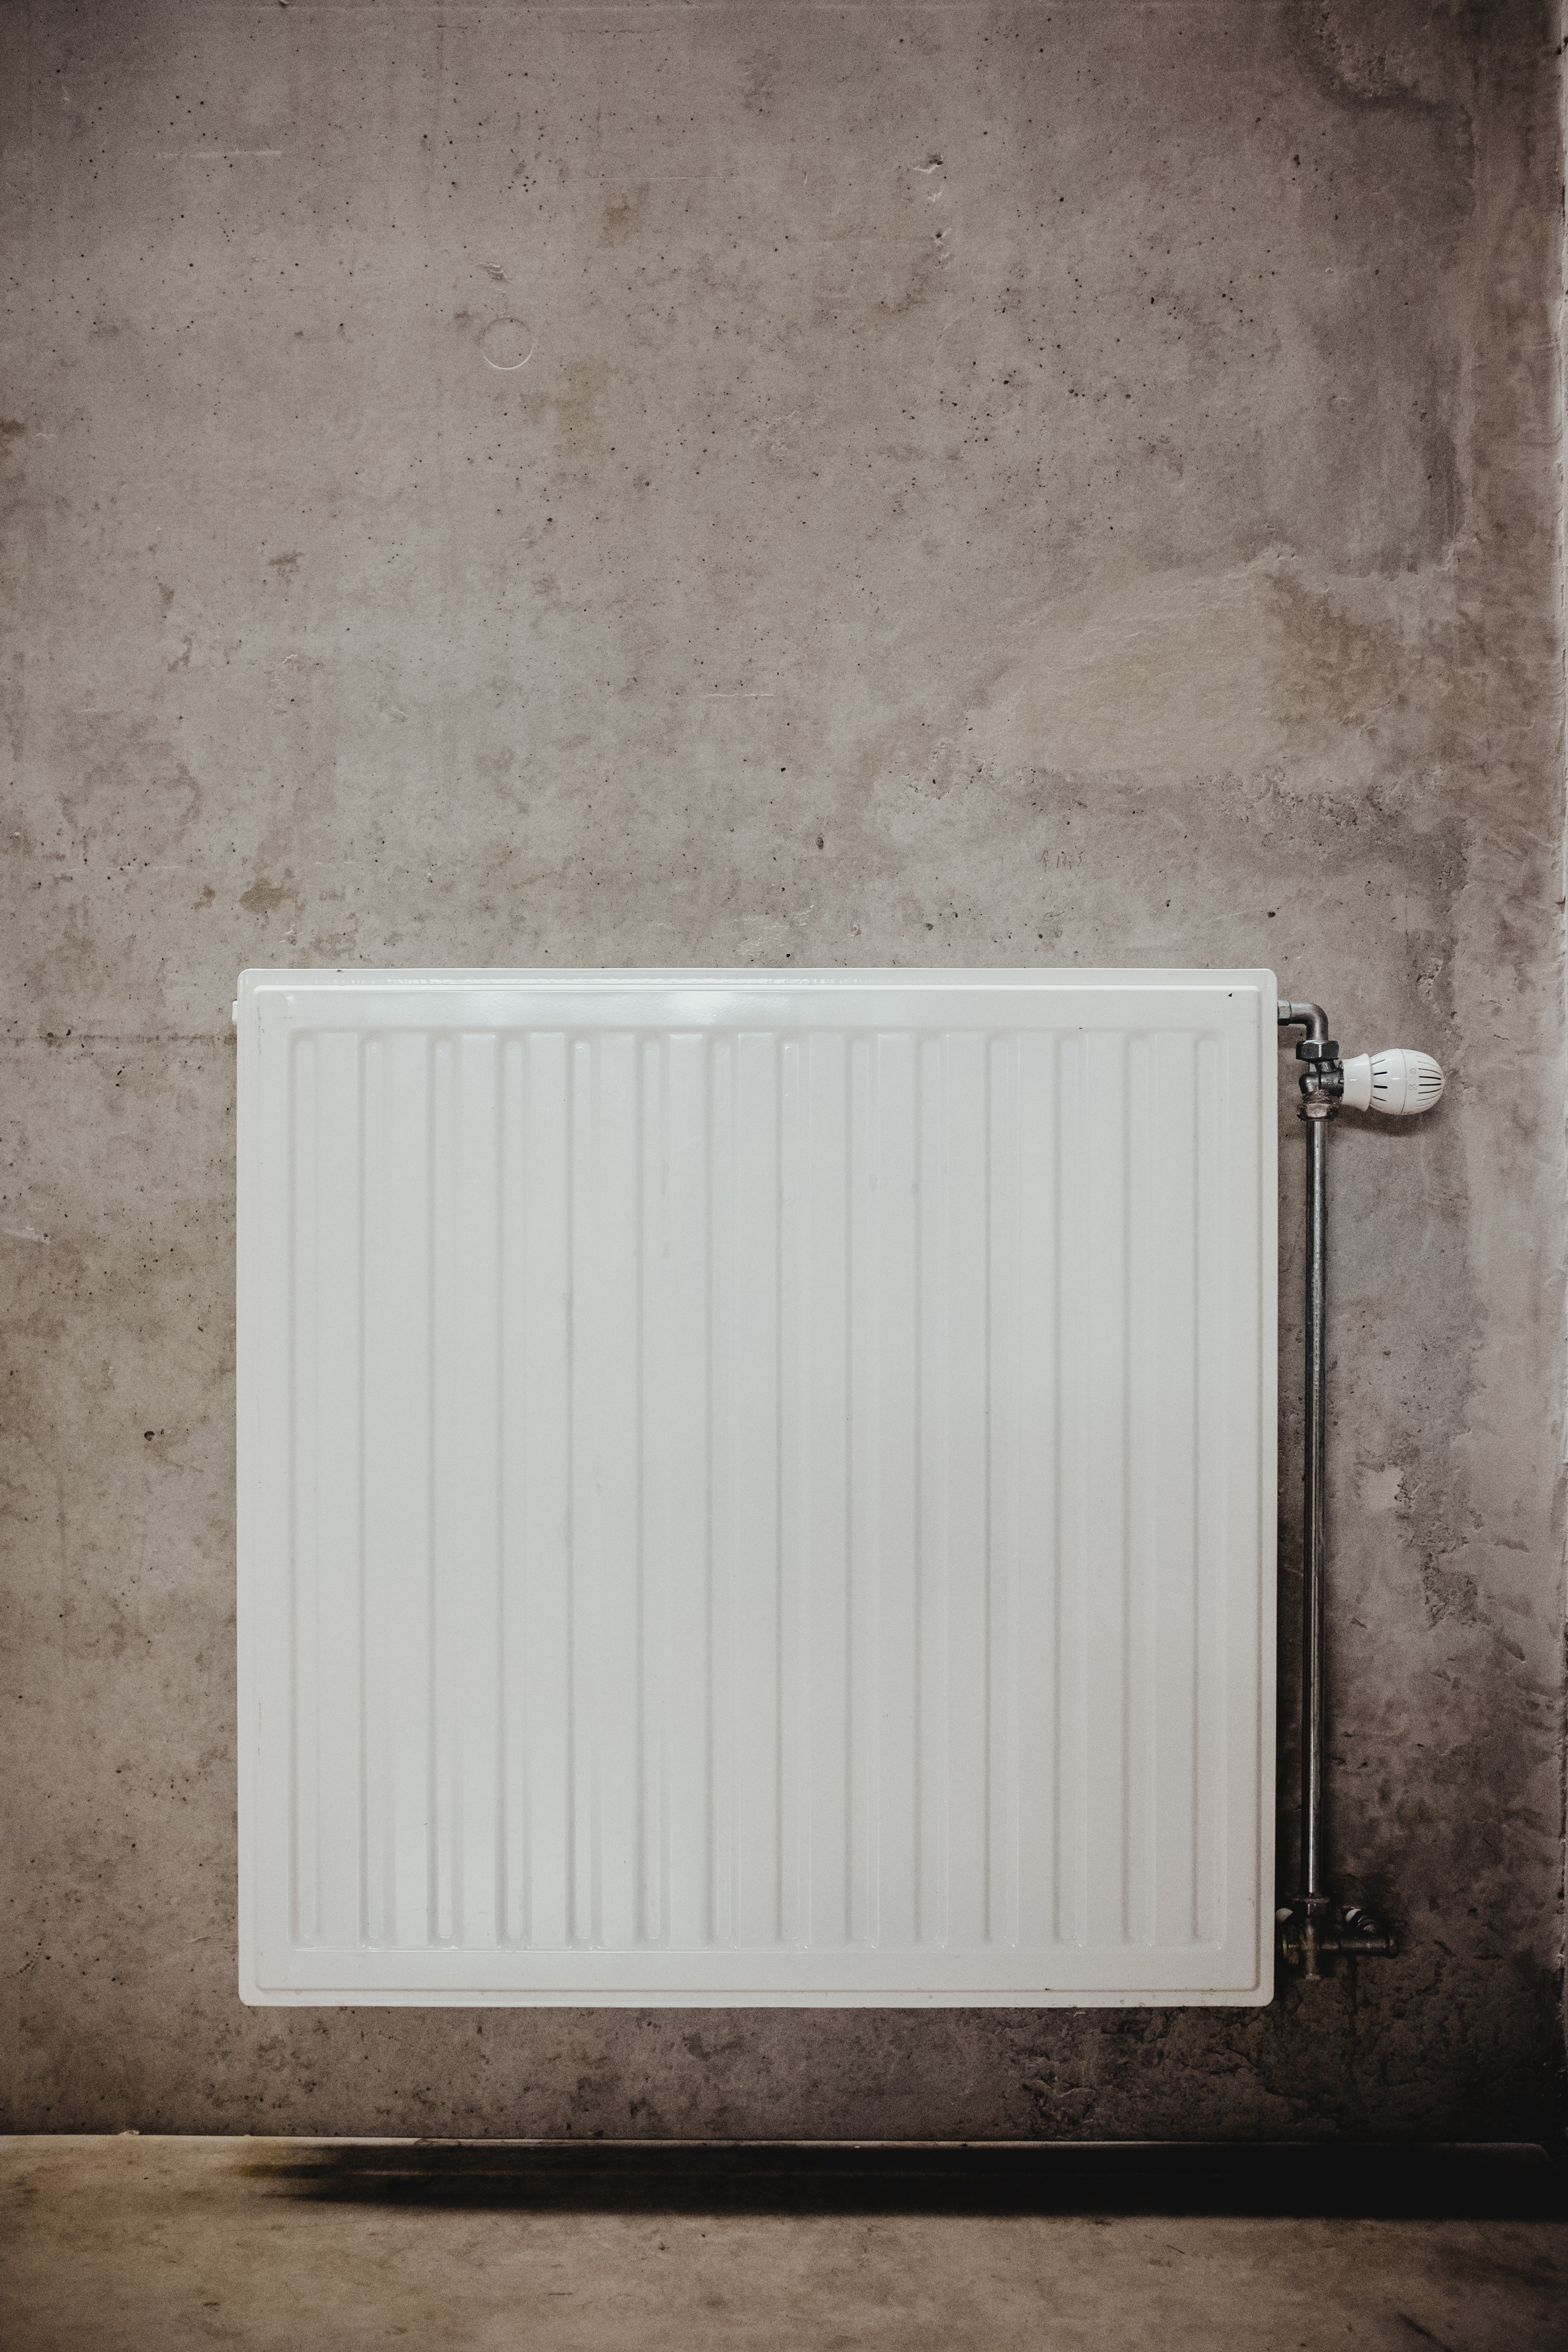 white metal panel heater on gray concrete wall